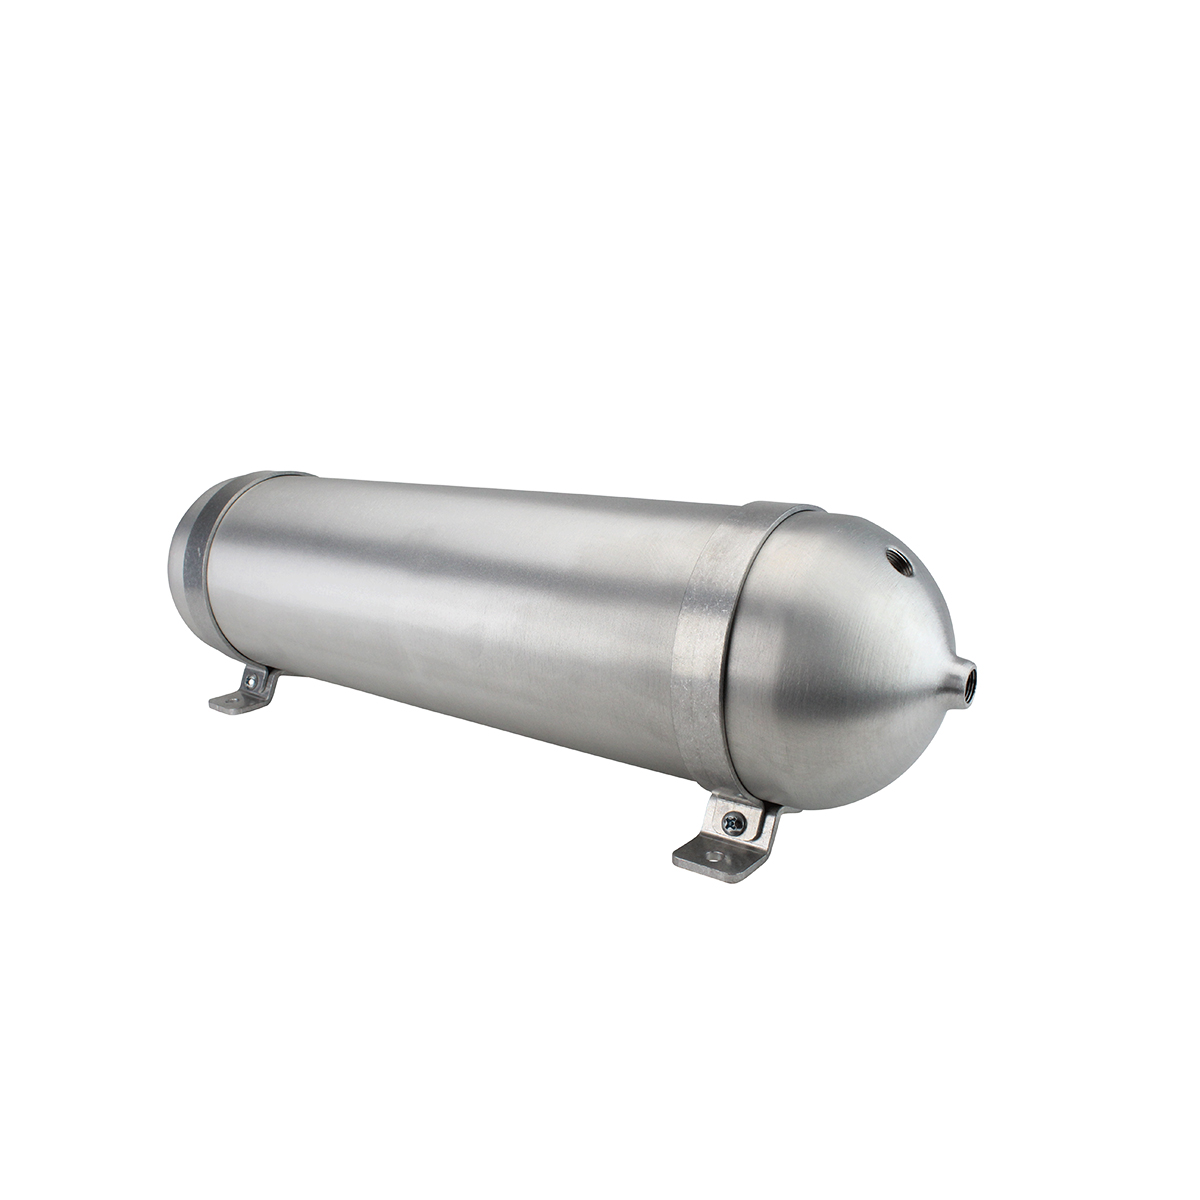 "SA524038-01 Seamless Tanks Aluminum Air Tank 24"" Length 5.562"" Diameter, (4) 3/8"" Ports (1) 1/4"" Port, 200psi Rated, Actual Volume 2.04 Gallons"